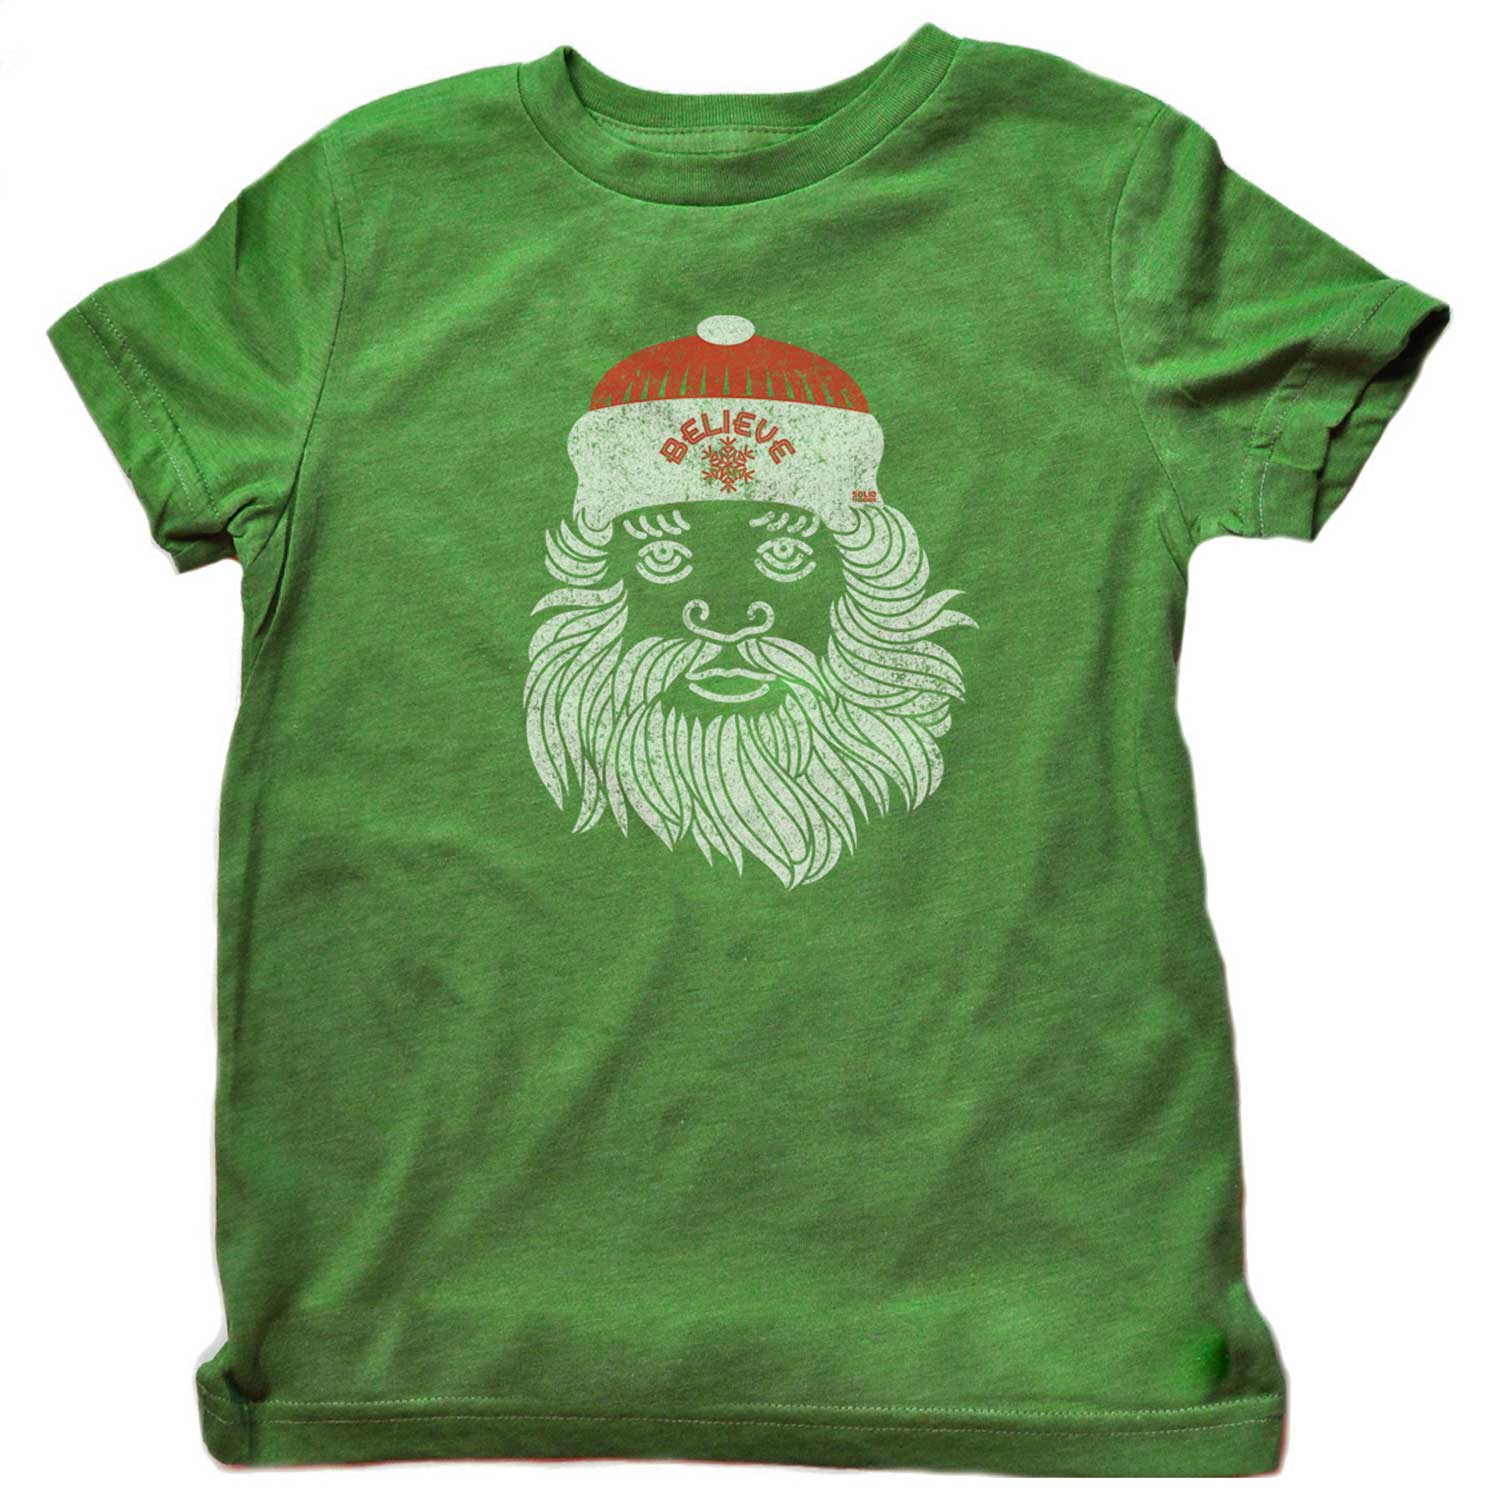 Kids Believe in Santa Cool Retro T-shirt | Funny Christmas Graphic Tee | Solid Threads